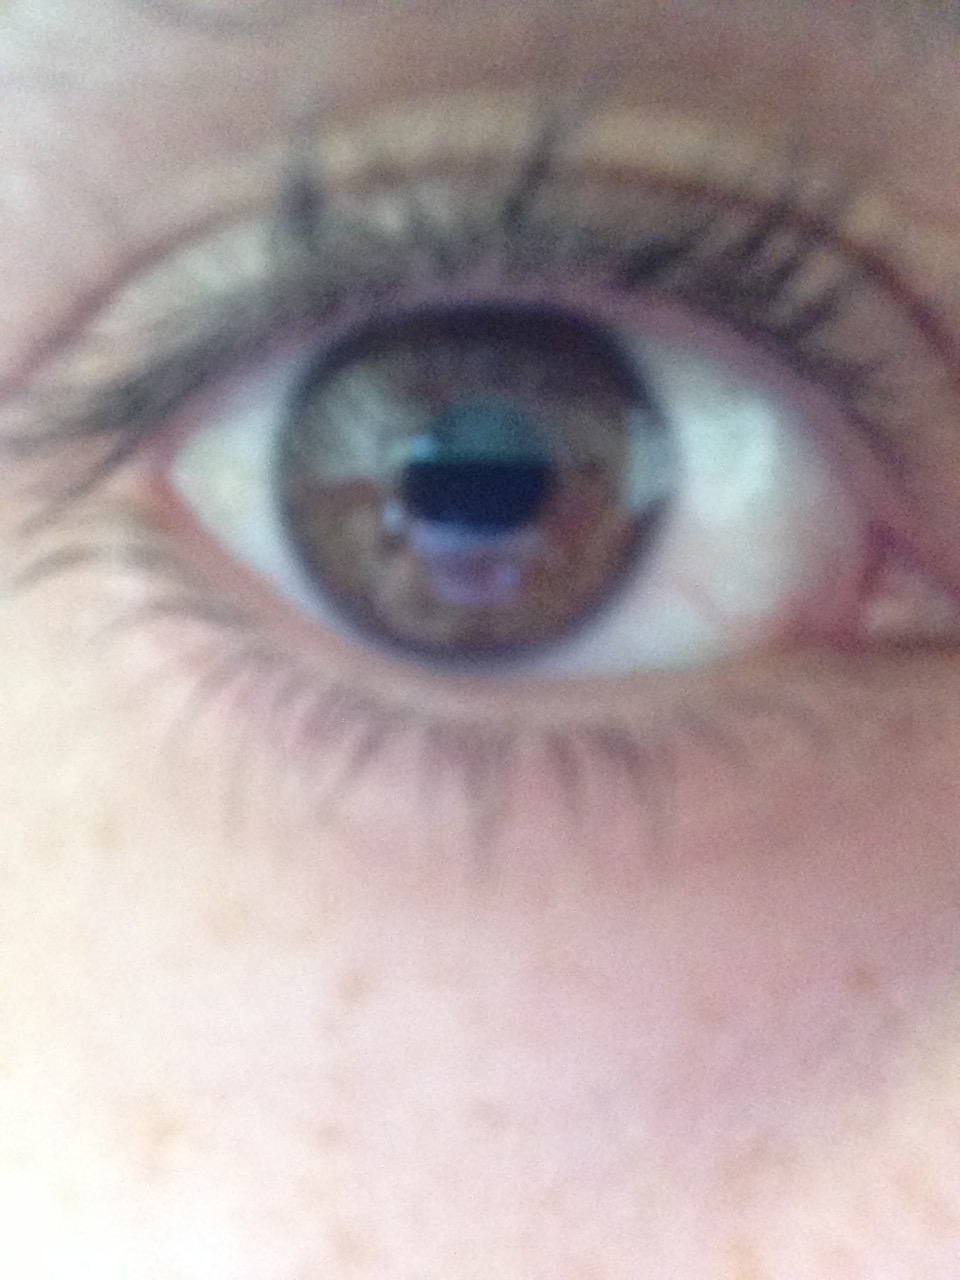 Right Eye